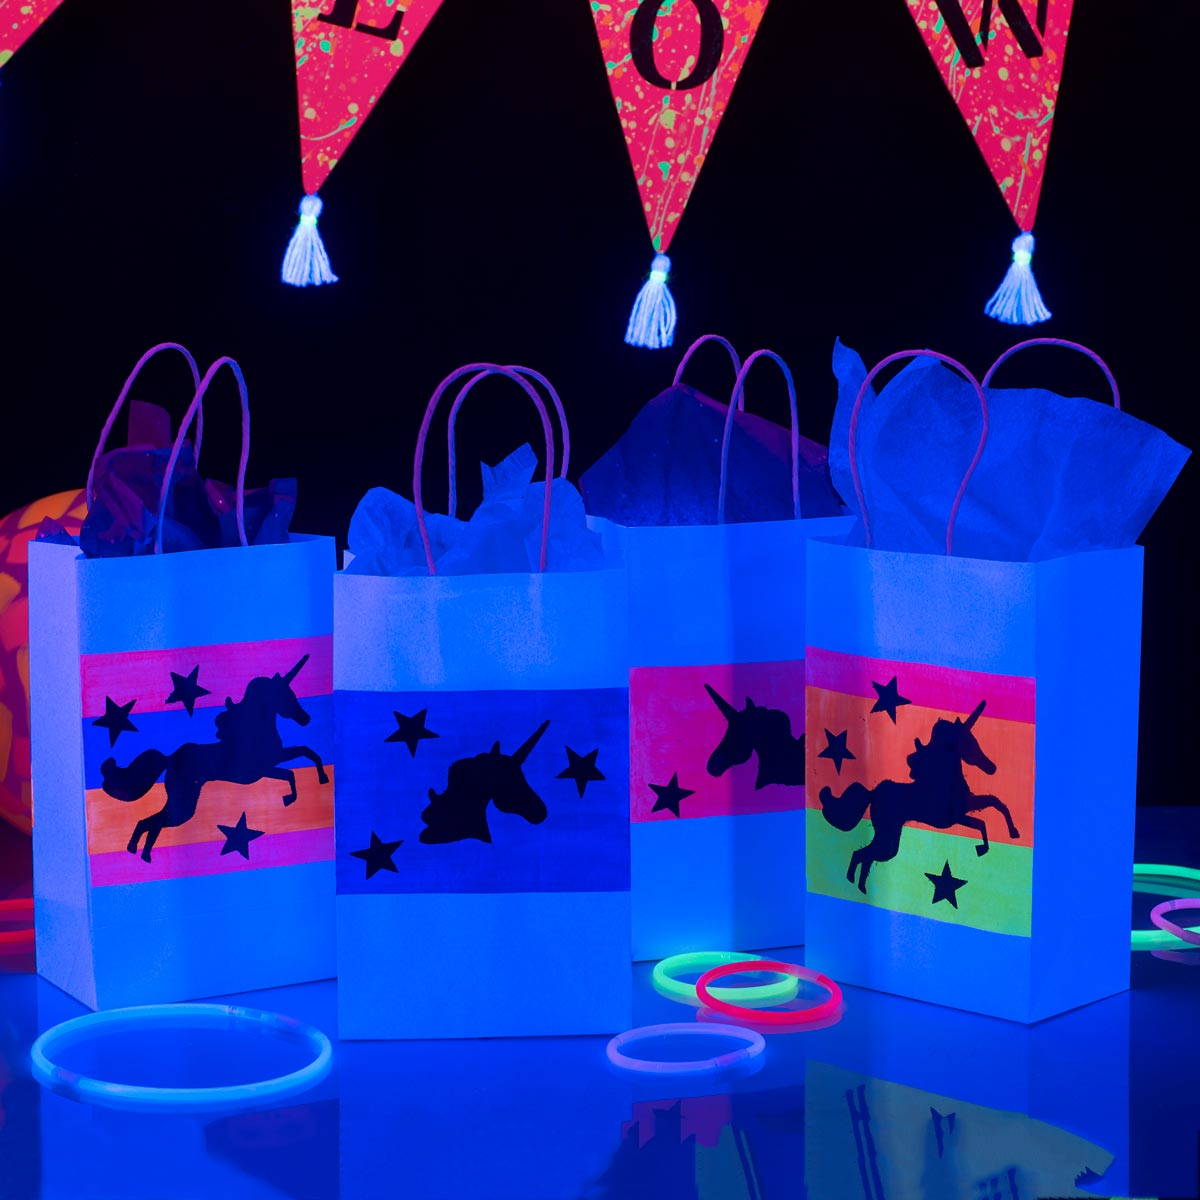 Glow-in-the-Dark Gift Bags